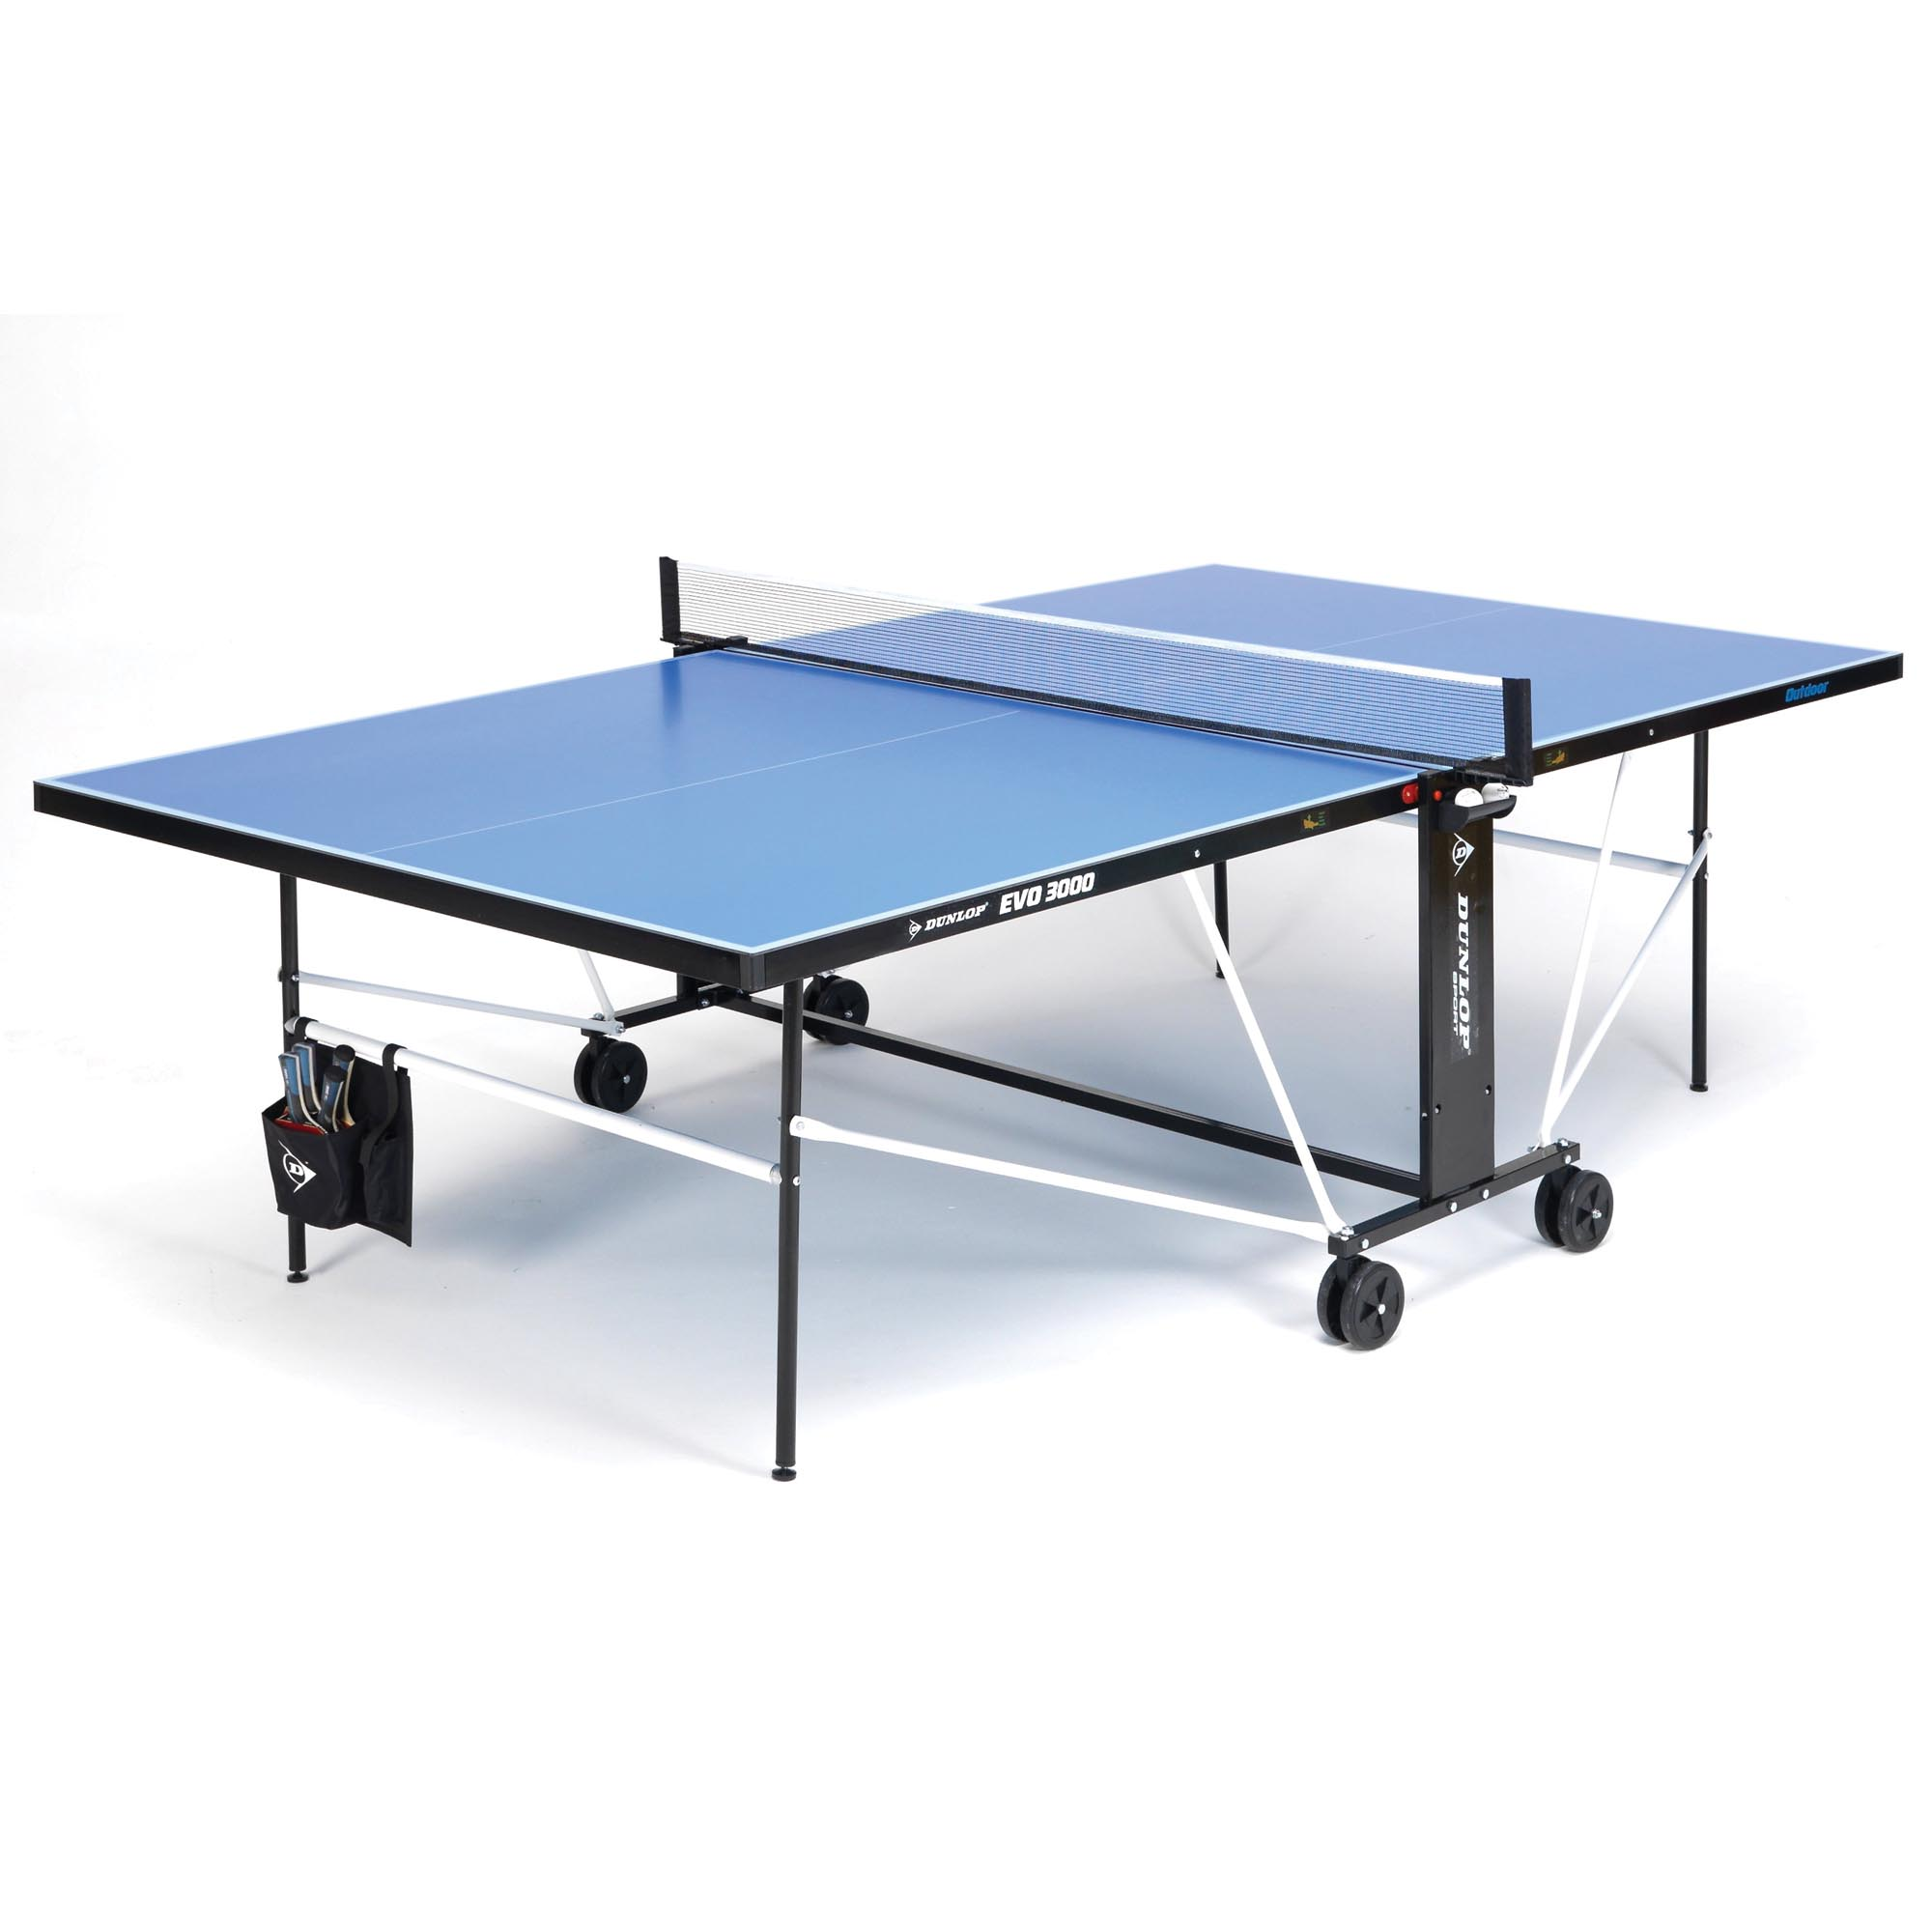 Table tennis shop for cheap table tennis and save online - Weatherproof table tennis table ...